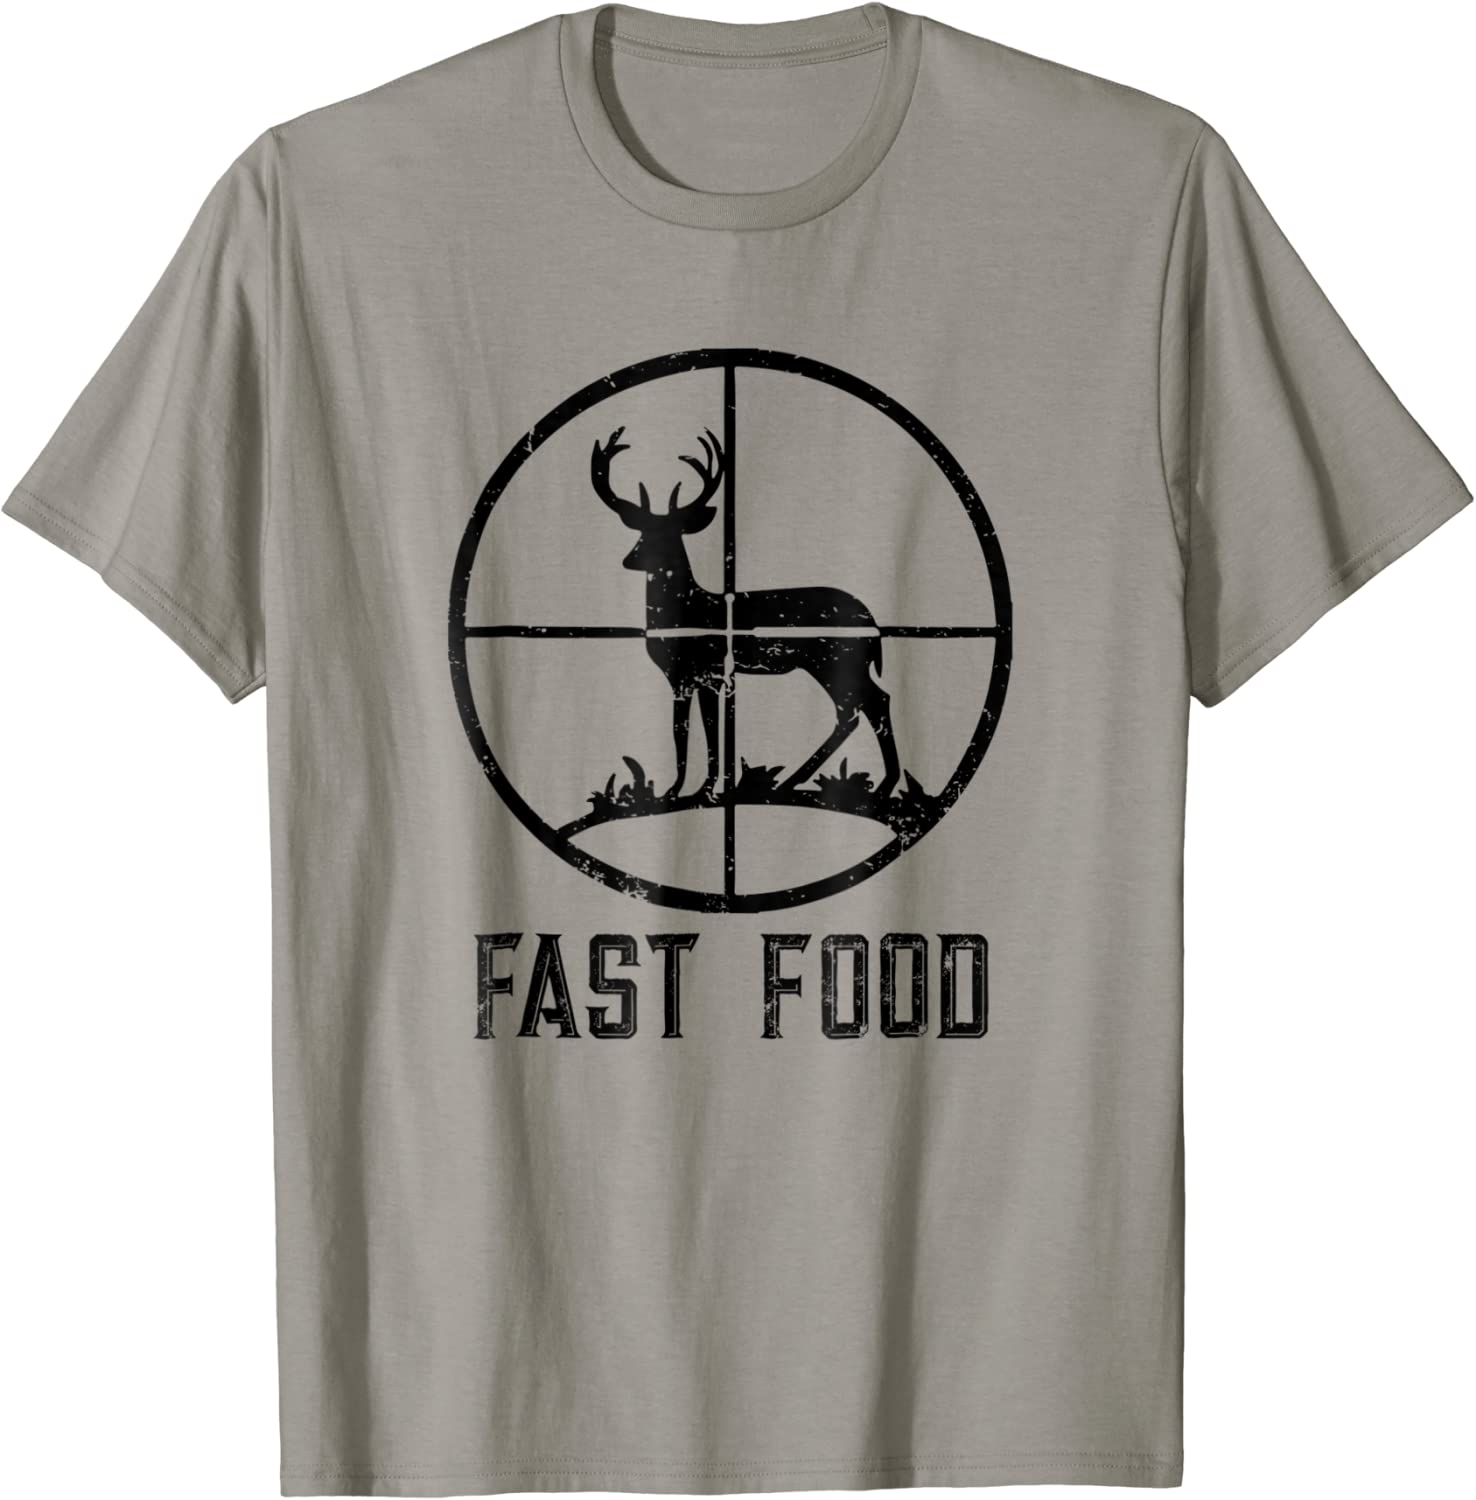 Fast Food Deer Hunting T-Shirt Funny Gift For Hunters